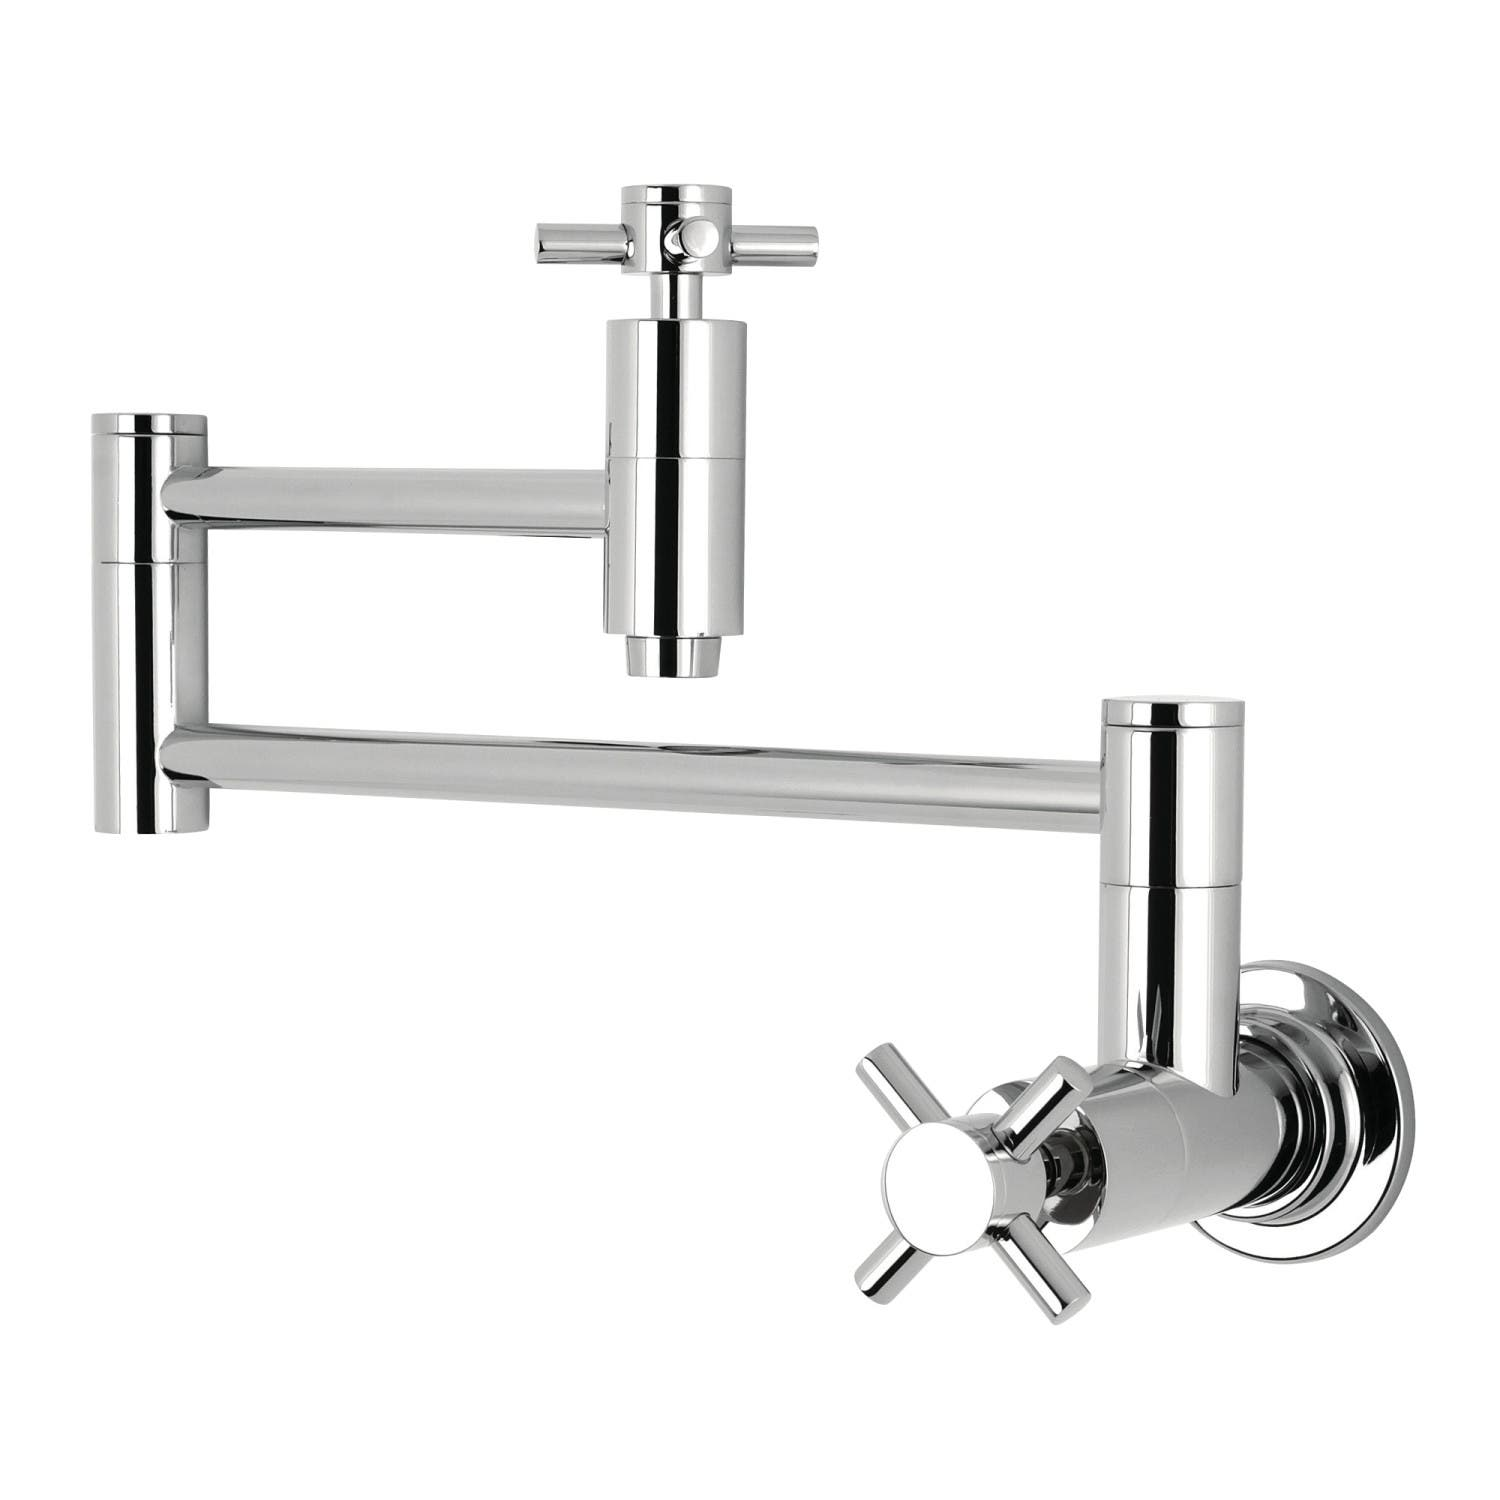 Kingston Brass KS8101DX Wall Mount Pot Filler Kitchen Faucet, Polished Chrome